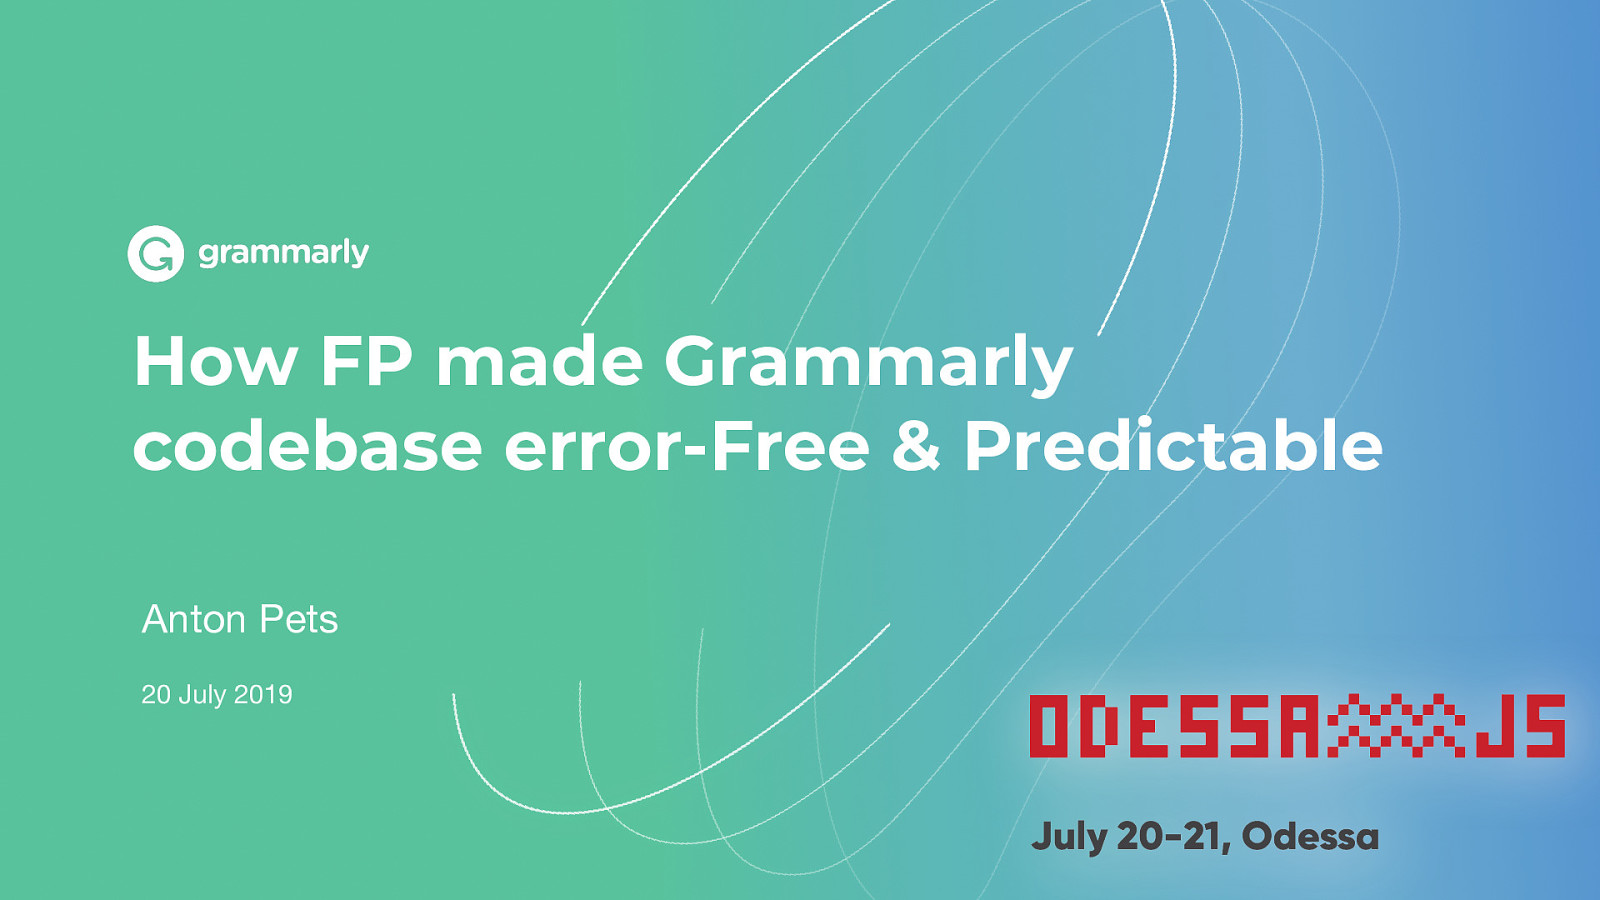 How FP made Grammarly codebase error-Free & Predictable